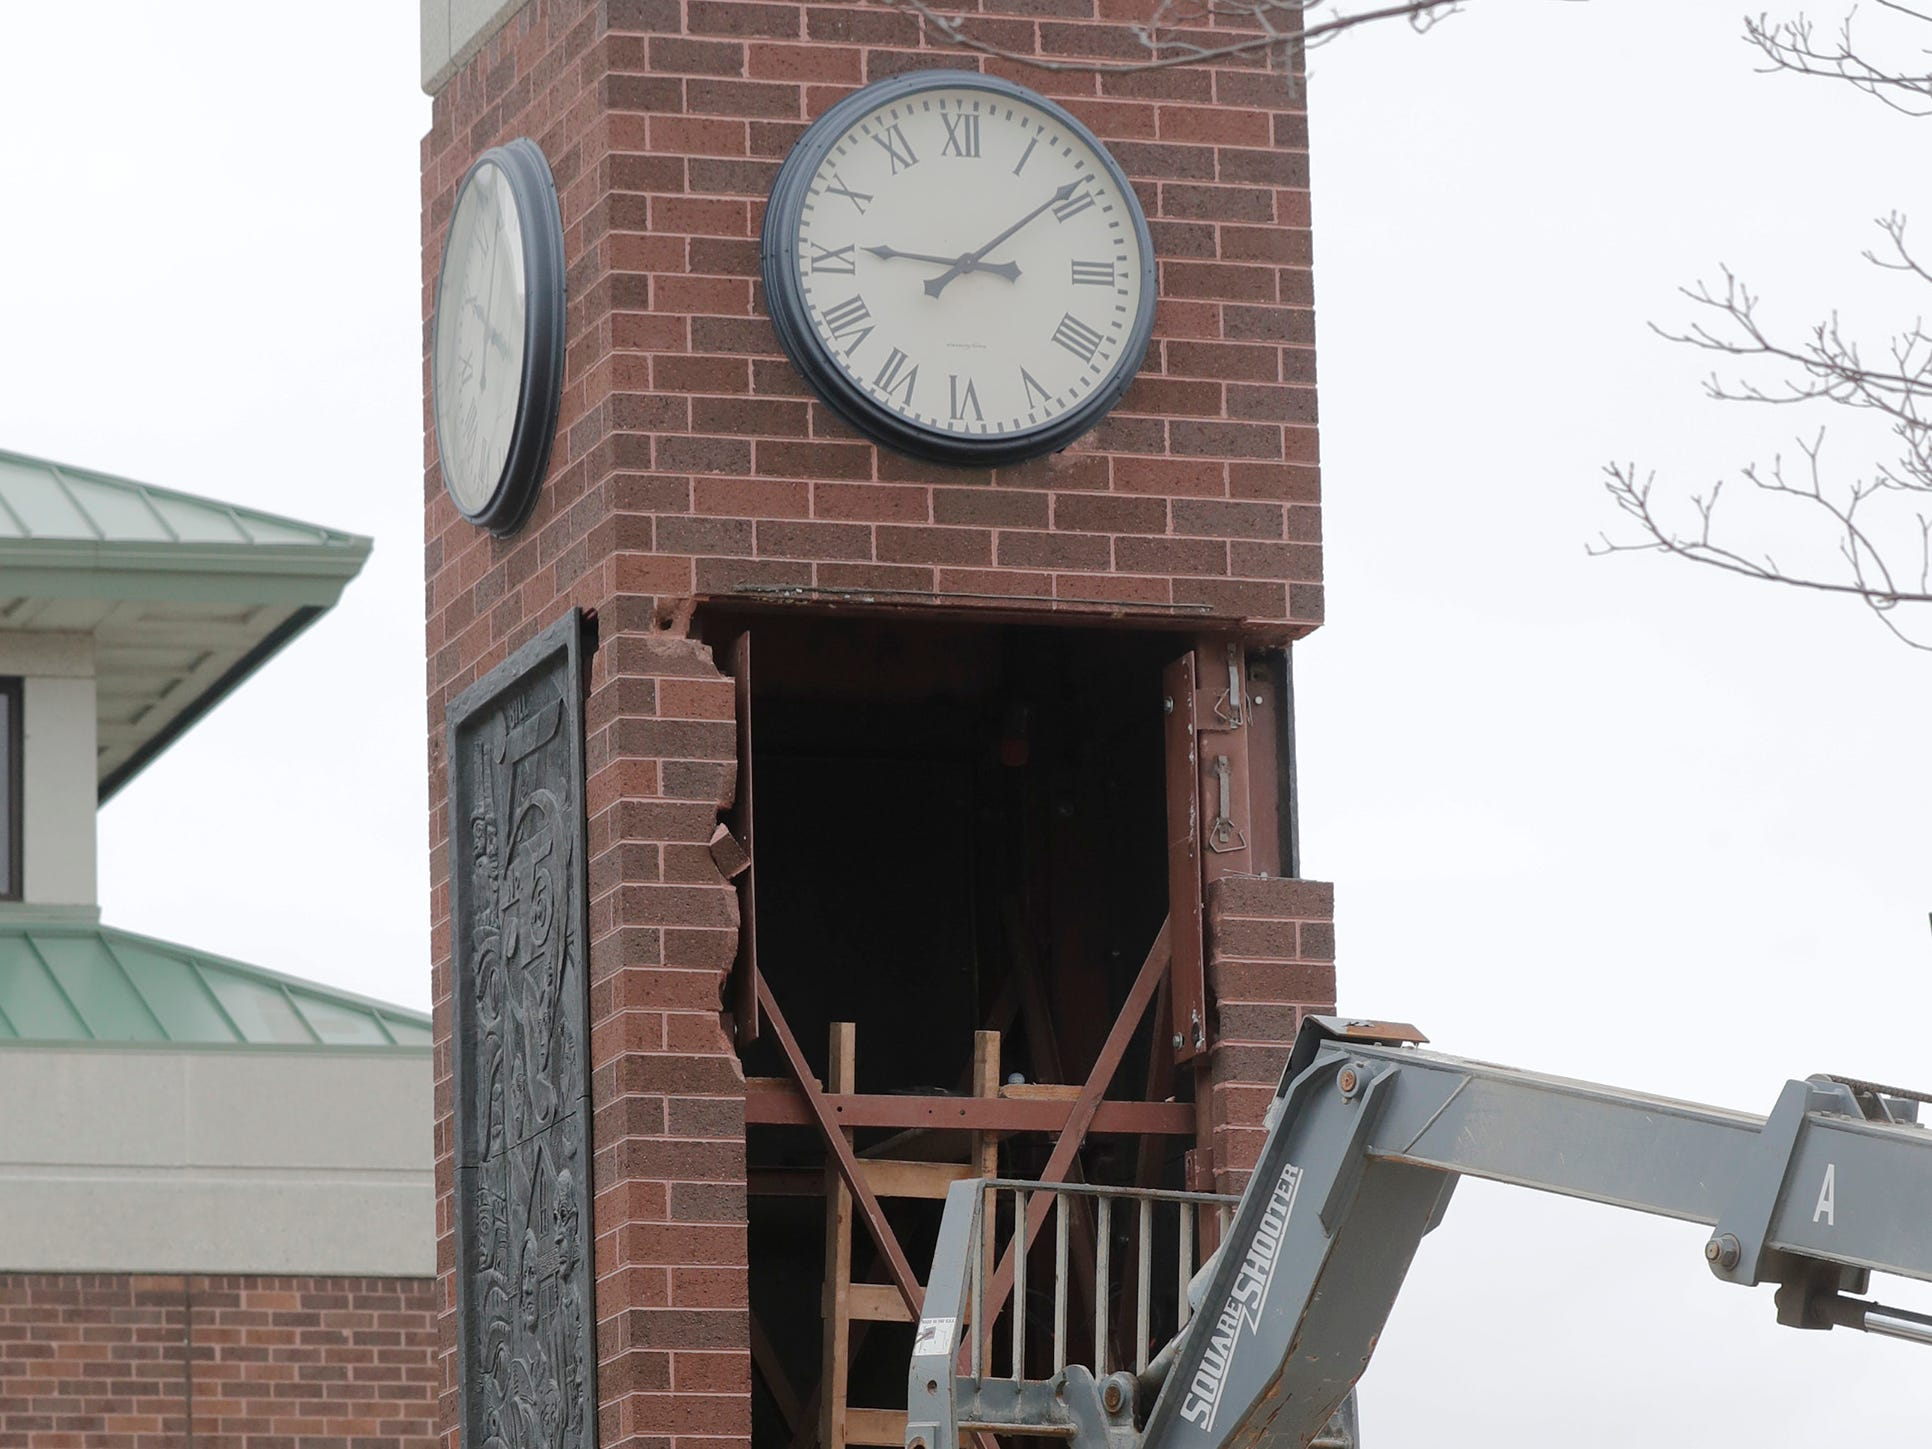 A scene from the removal of the 800-pound cast panels from the clock tower at Mead Public Library, Wednesday April 10, 2019, in Sheboygan, Wis. The city is repurposing the cast panels for an 8th Street display as part of a renovations project.